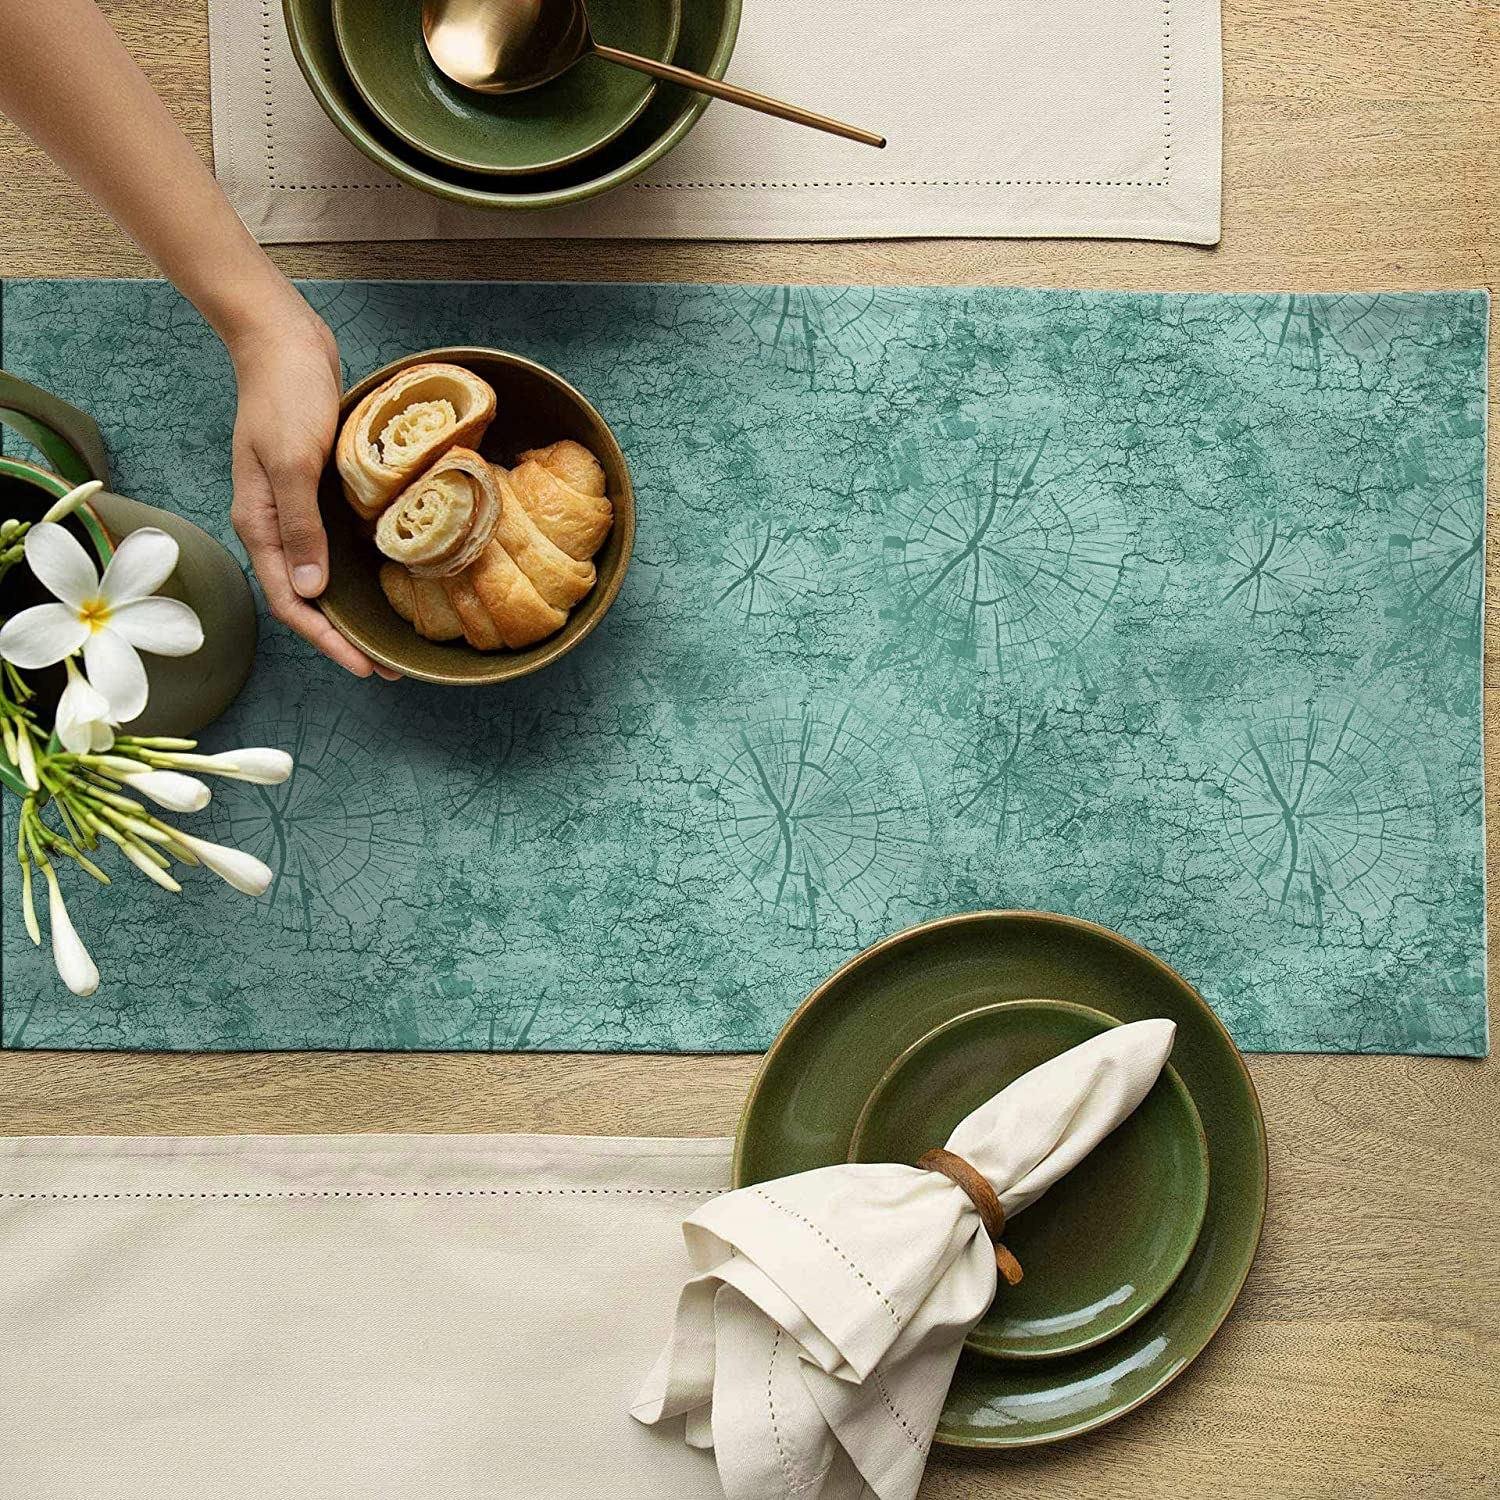 Green plates, napkins, a bowl of croissants, and a plant kept on the table runner.